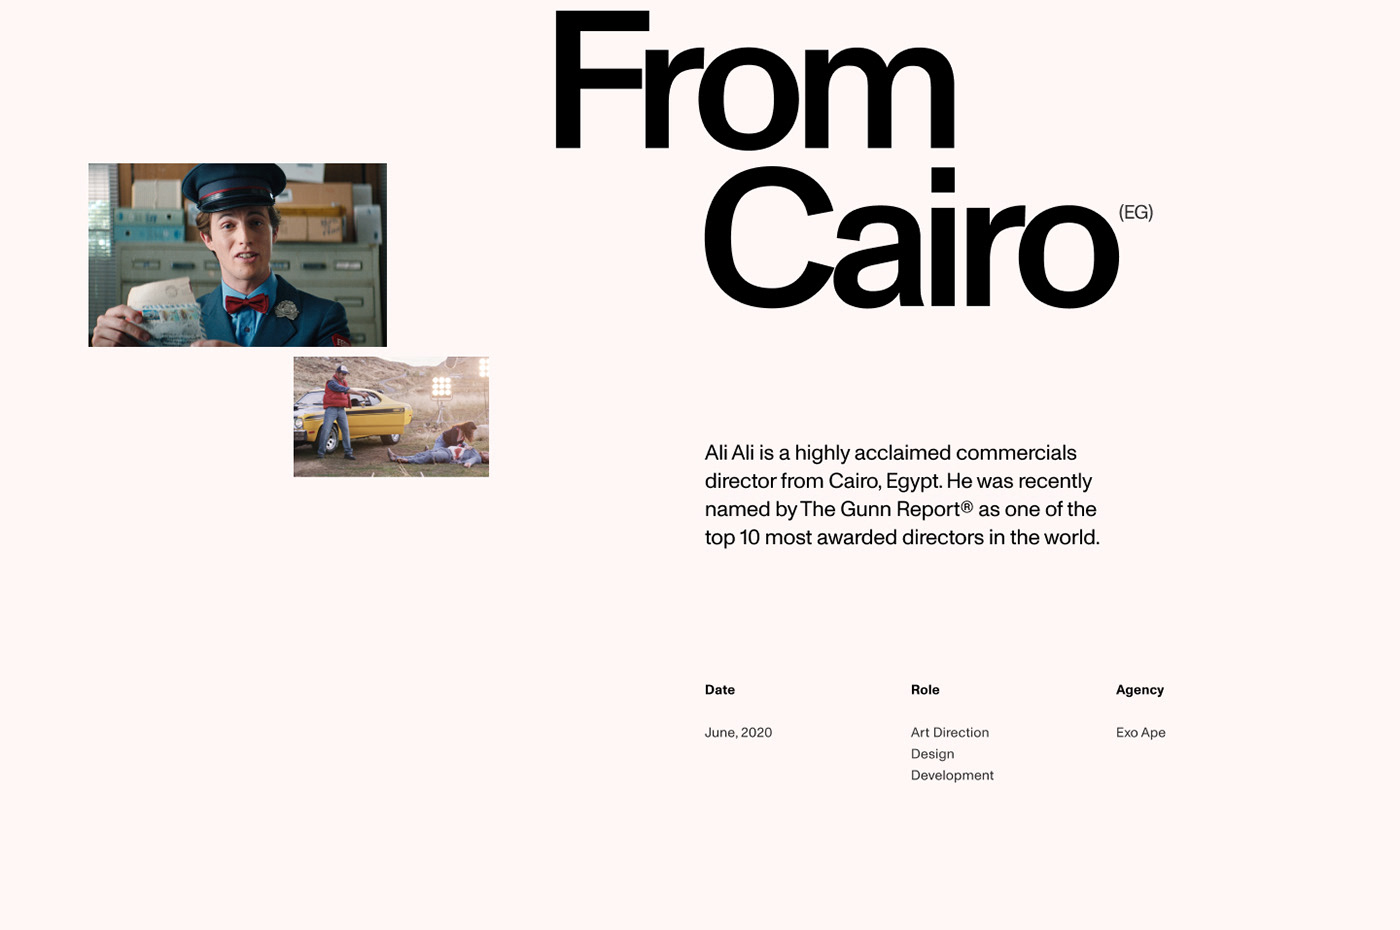 short introduction about commercial director Ali Ali from Cairo, Egypt.